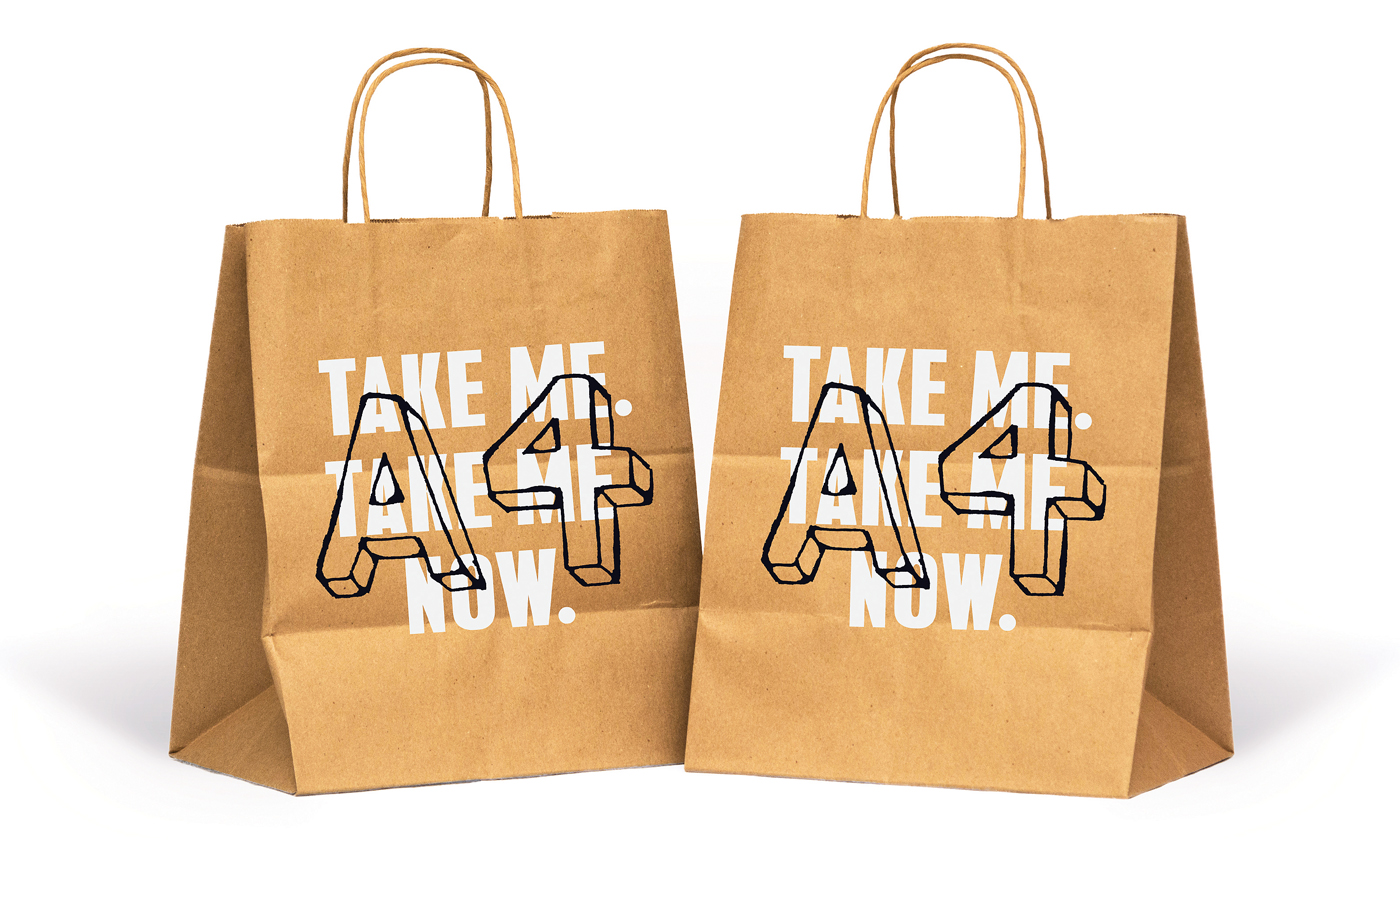 a4_bags